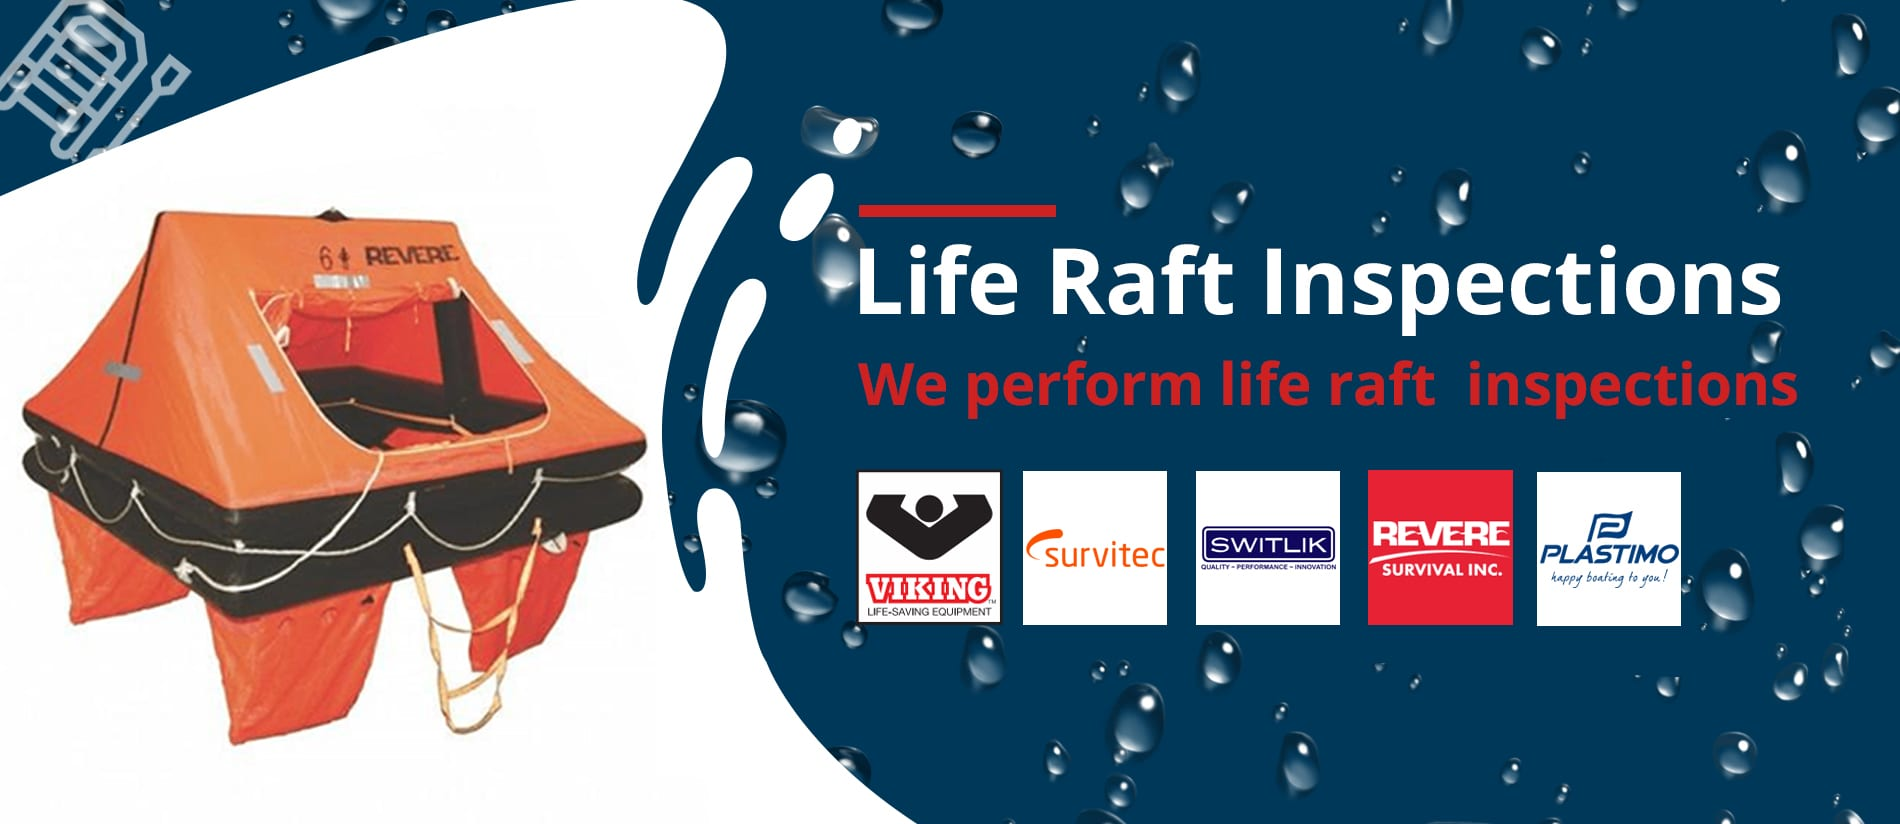 Life Raft Inspections